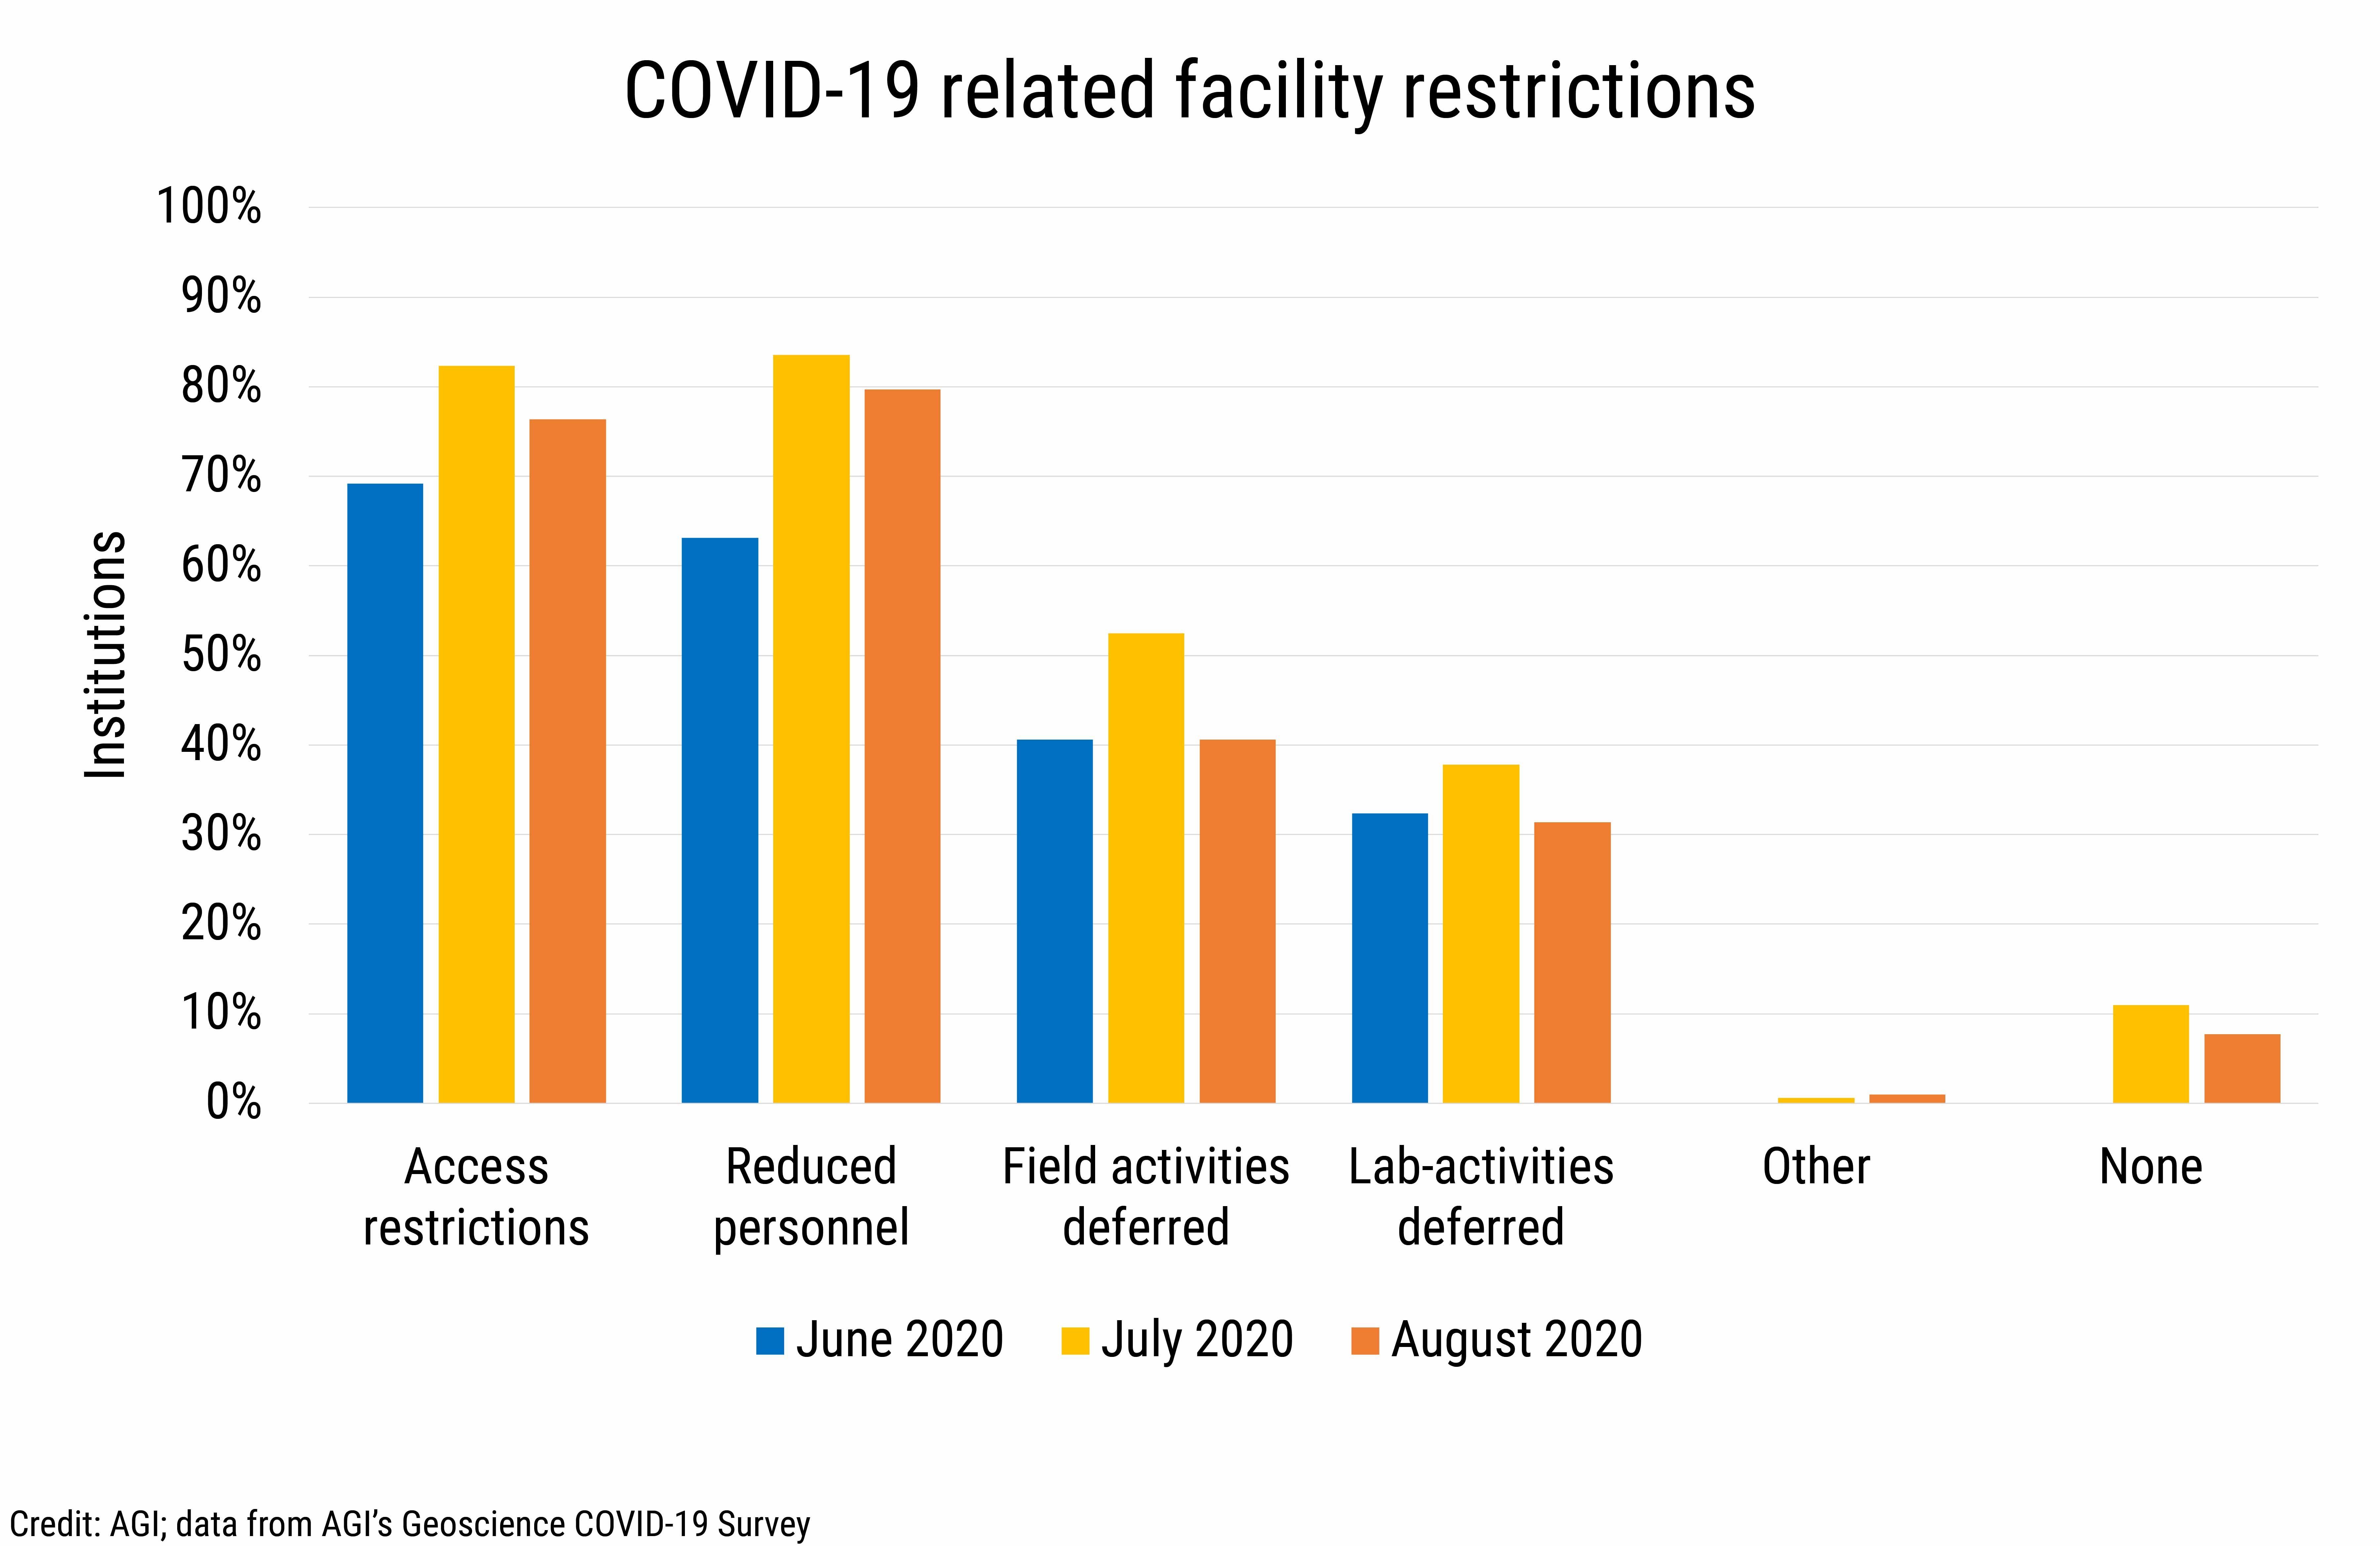 DB2020-021: chart 08: COVID-19 related facility restrictions (Credit: AGI; data from AGI's Geoscience COVID-19 Survey)